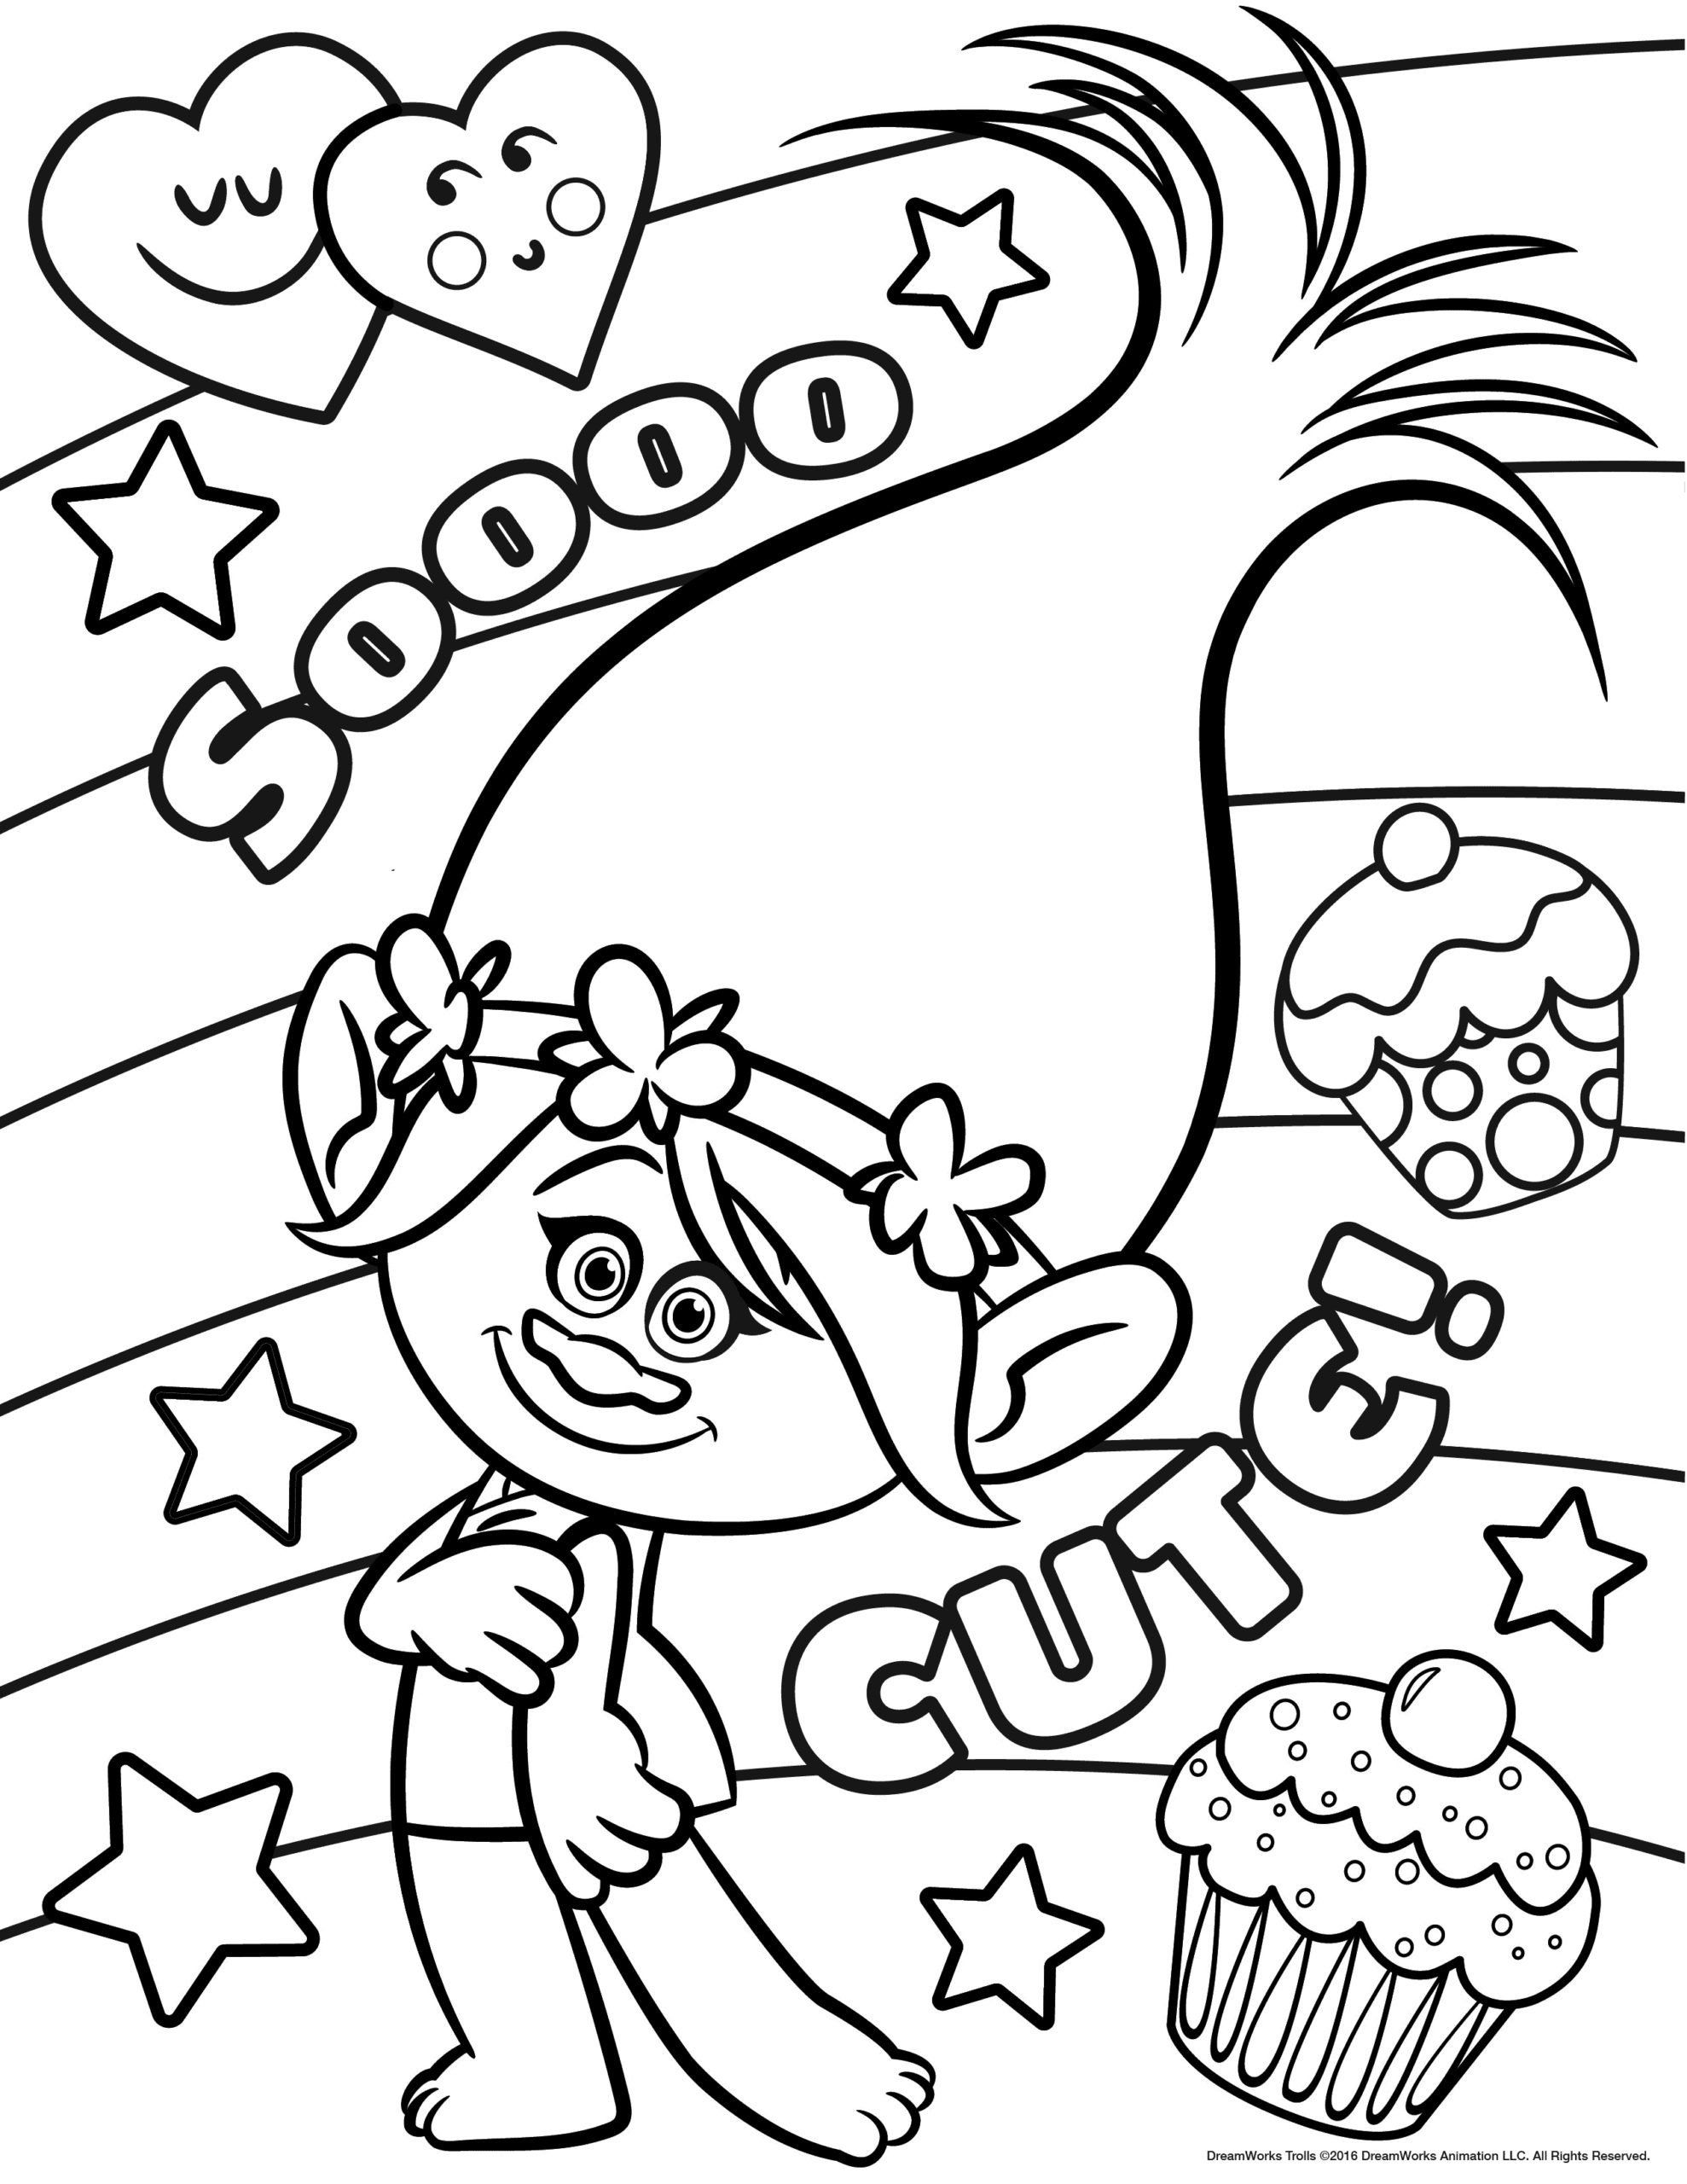 Disney Coloring Pages Free Coloring Pages Coloring Book Printable Disney Thanksgiving Poppy Coloring Page Disney Coloring Pages Free Disney Coloring Pages